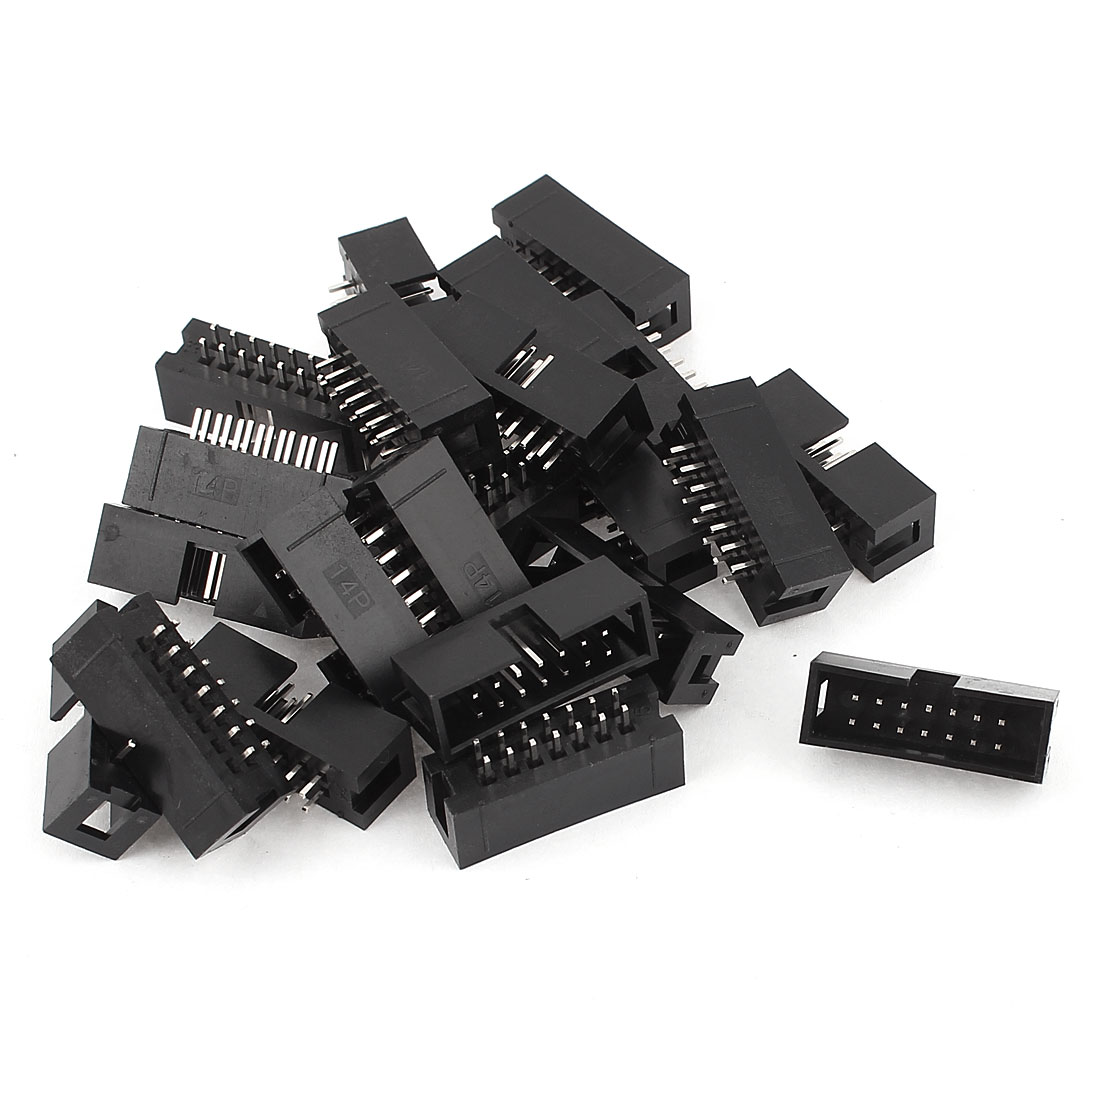 23 Pcs Dual Row 14-Pin 2.54mm Straight Box Header Connector IDC Male Sockets